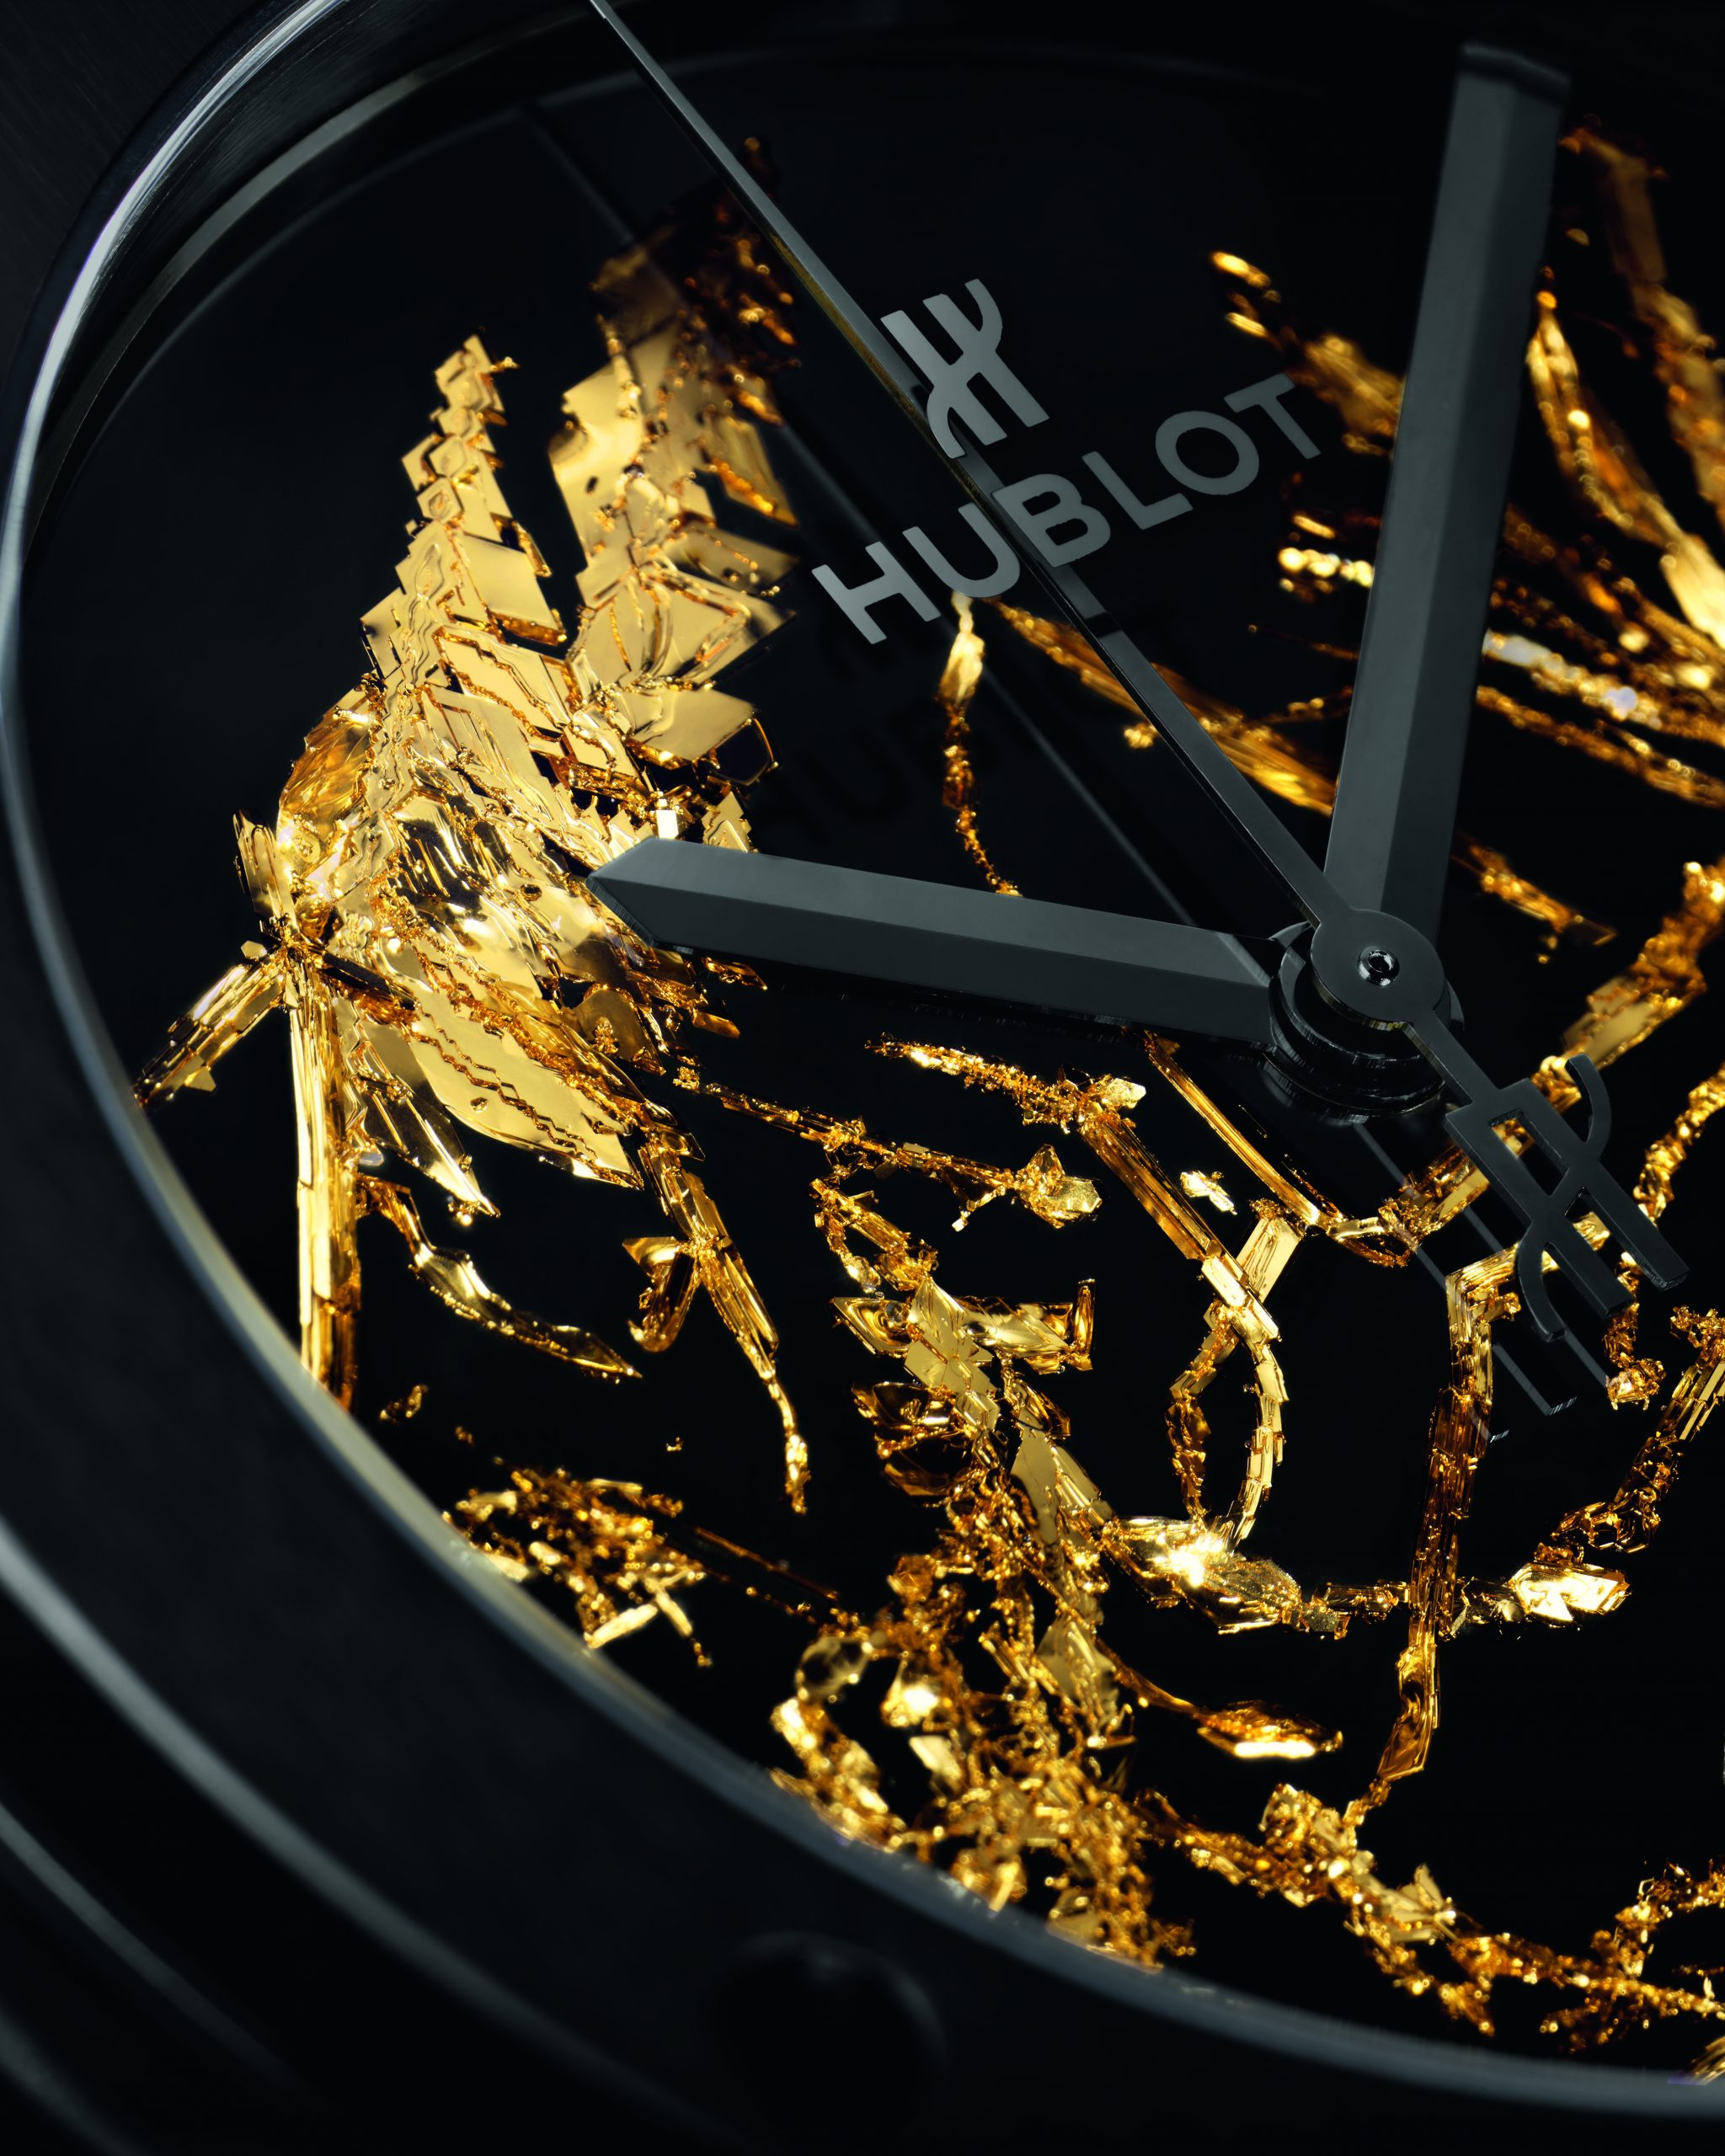 As the doors open again, here are 3 watches you can only get in the Sydney Hublot boutique